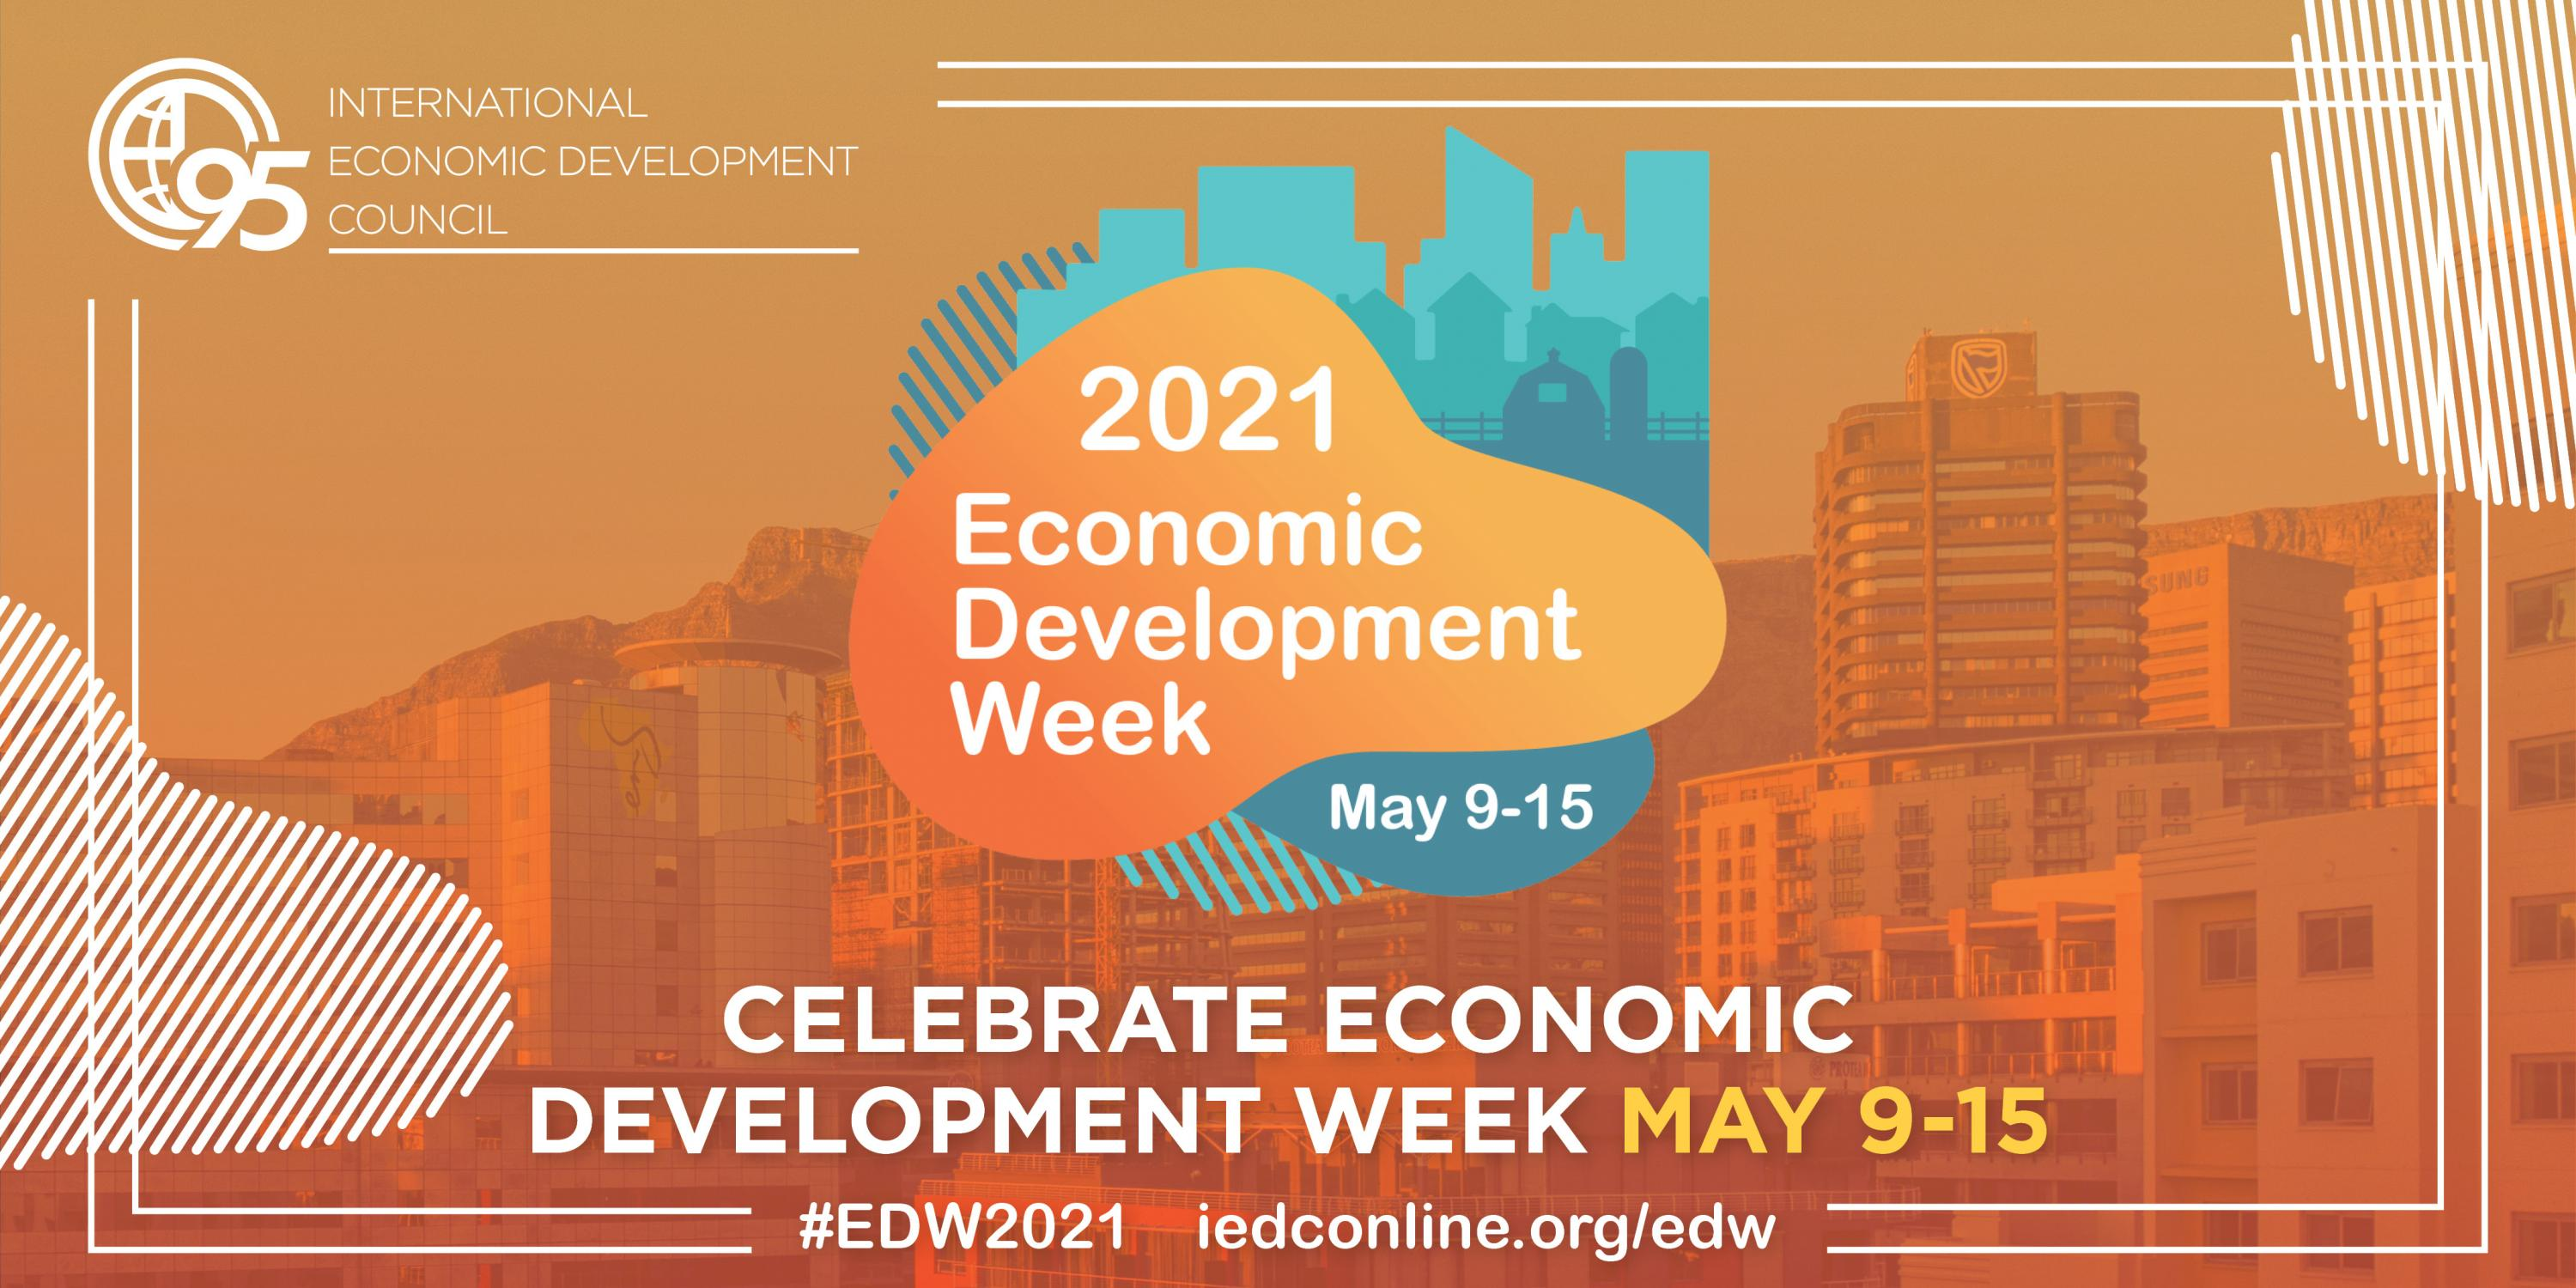 Event Promo Photo For Economic Development Week!